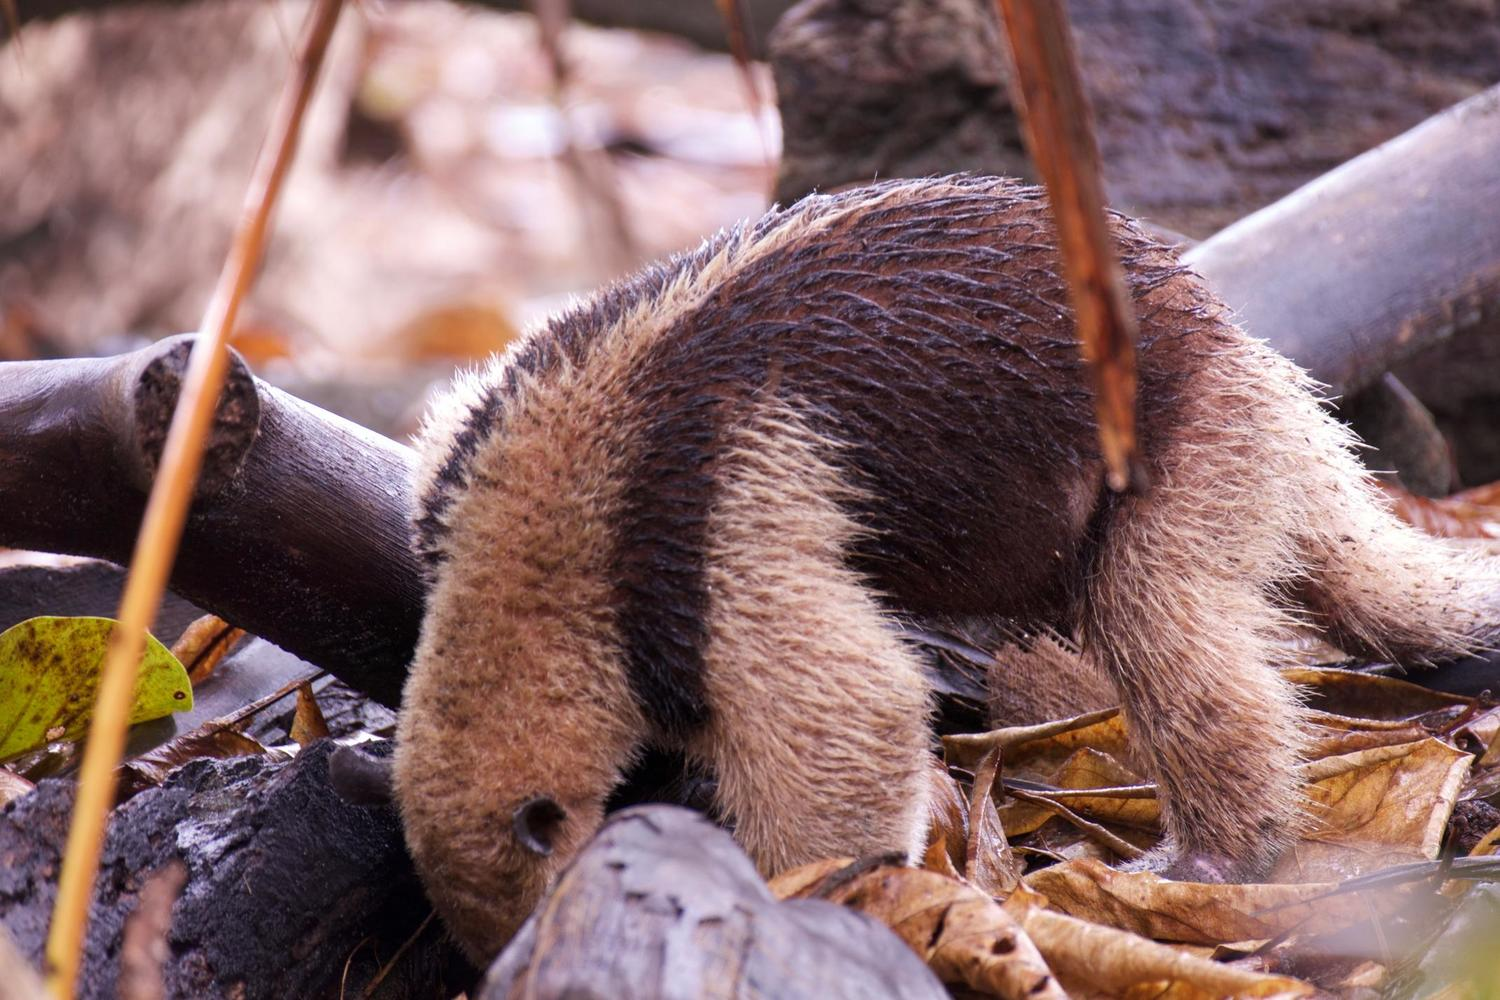 Anteater foraging in Corcovado National Park